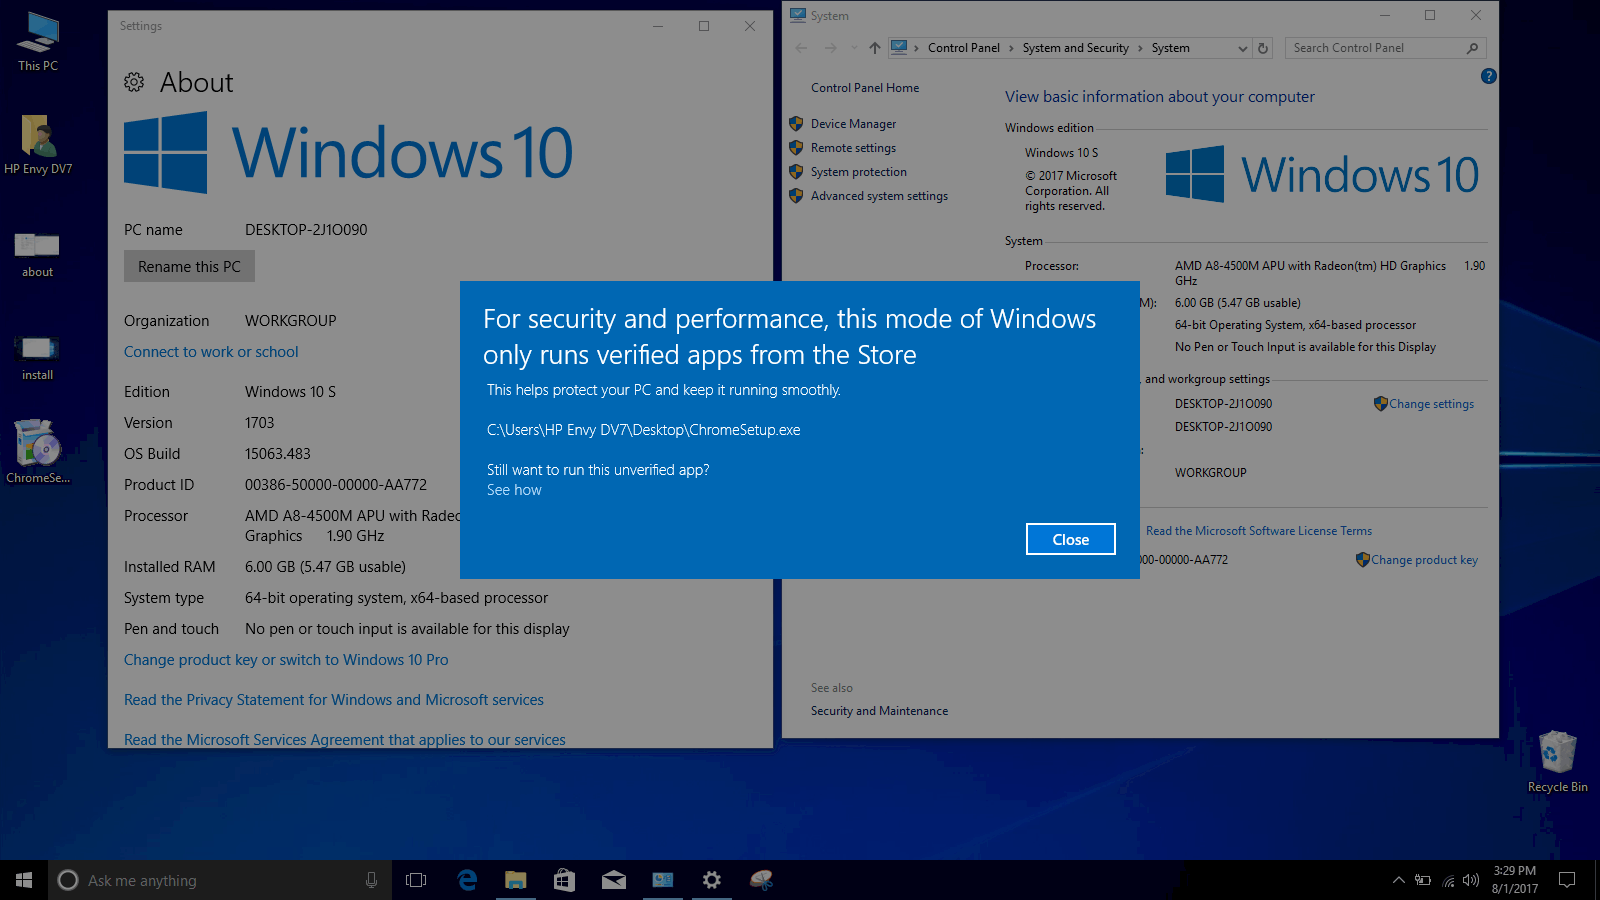 Here is how you can download and install Windows 10 S OnMSFT.com August 1, 2017